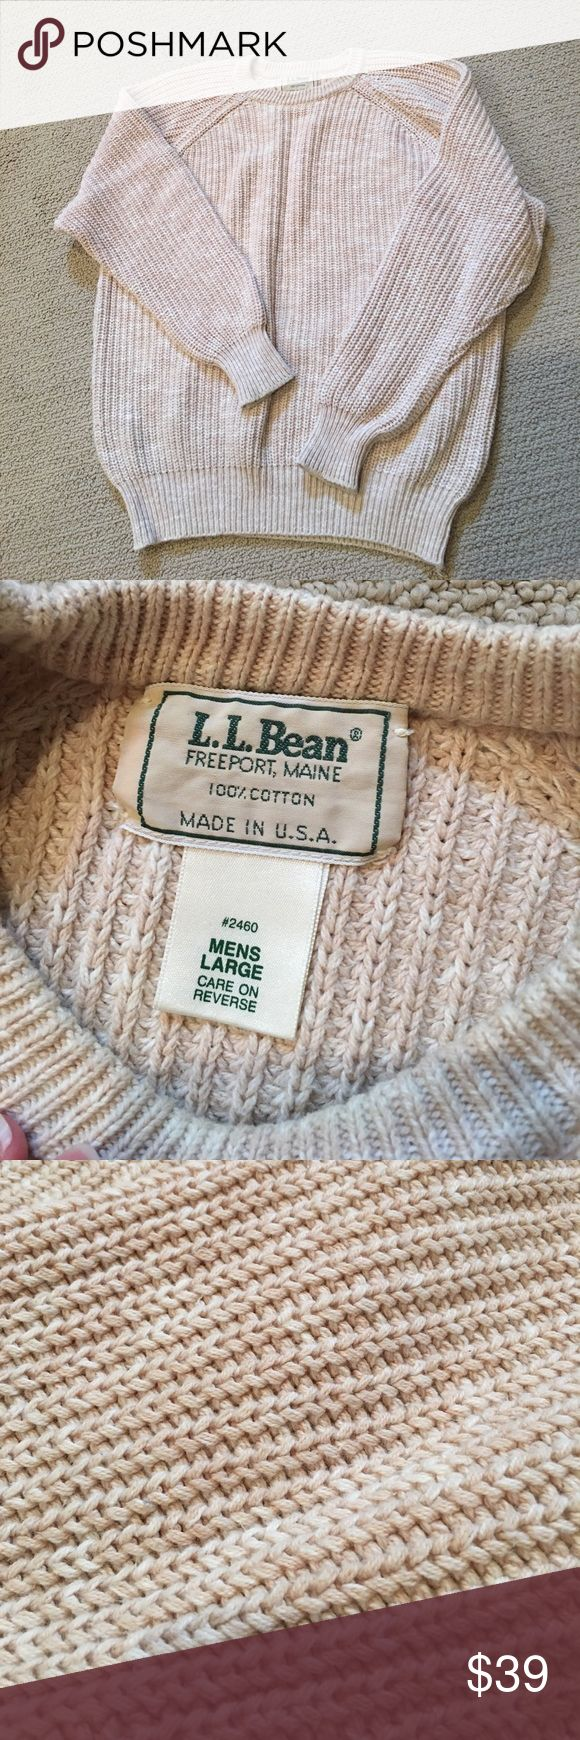 LL Bean Sweater Beige Mens Knit Sweater Sz Large LL Bean men's knit sweater. Size large. Chest measures 48 inches. Length on the sweater is 26 inches. Arms measure approximately 24 inches. 100% cotton. L L Bean Sweaters Crewneck